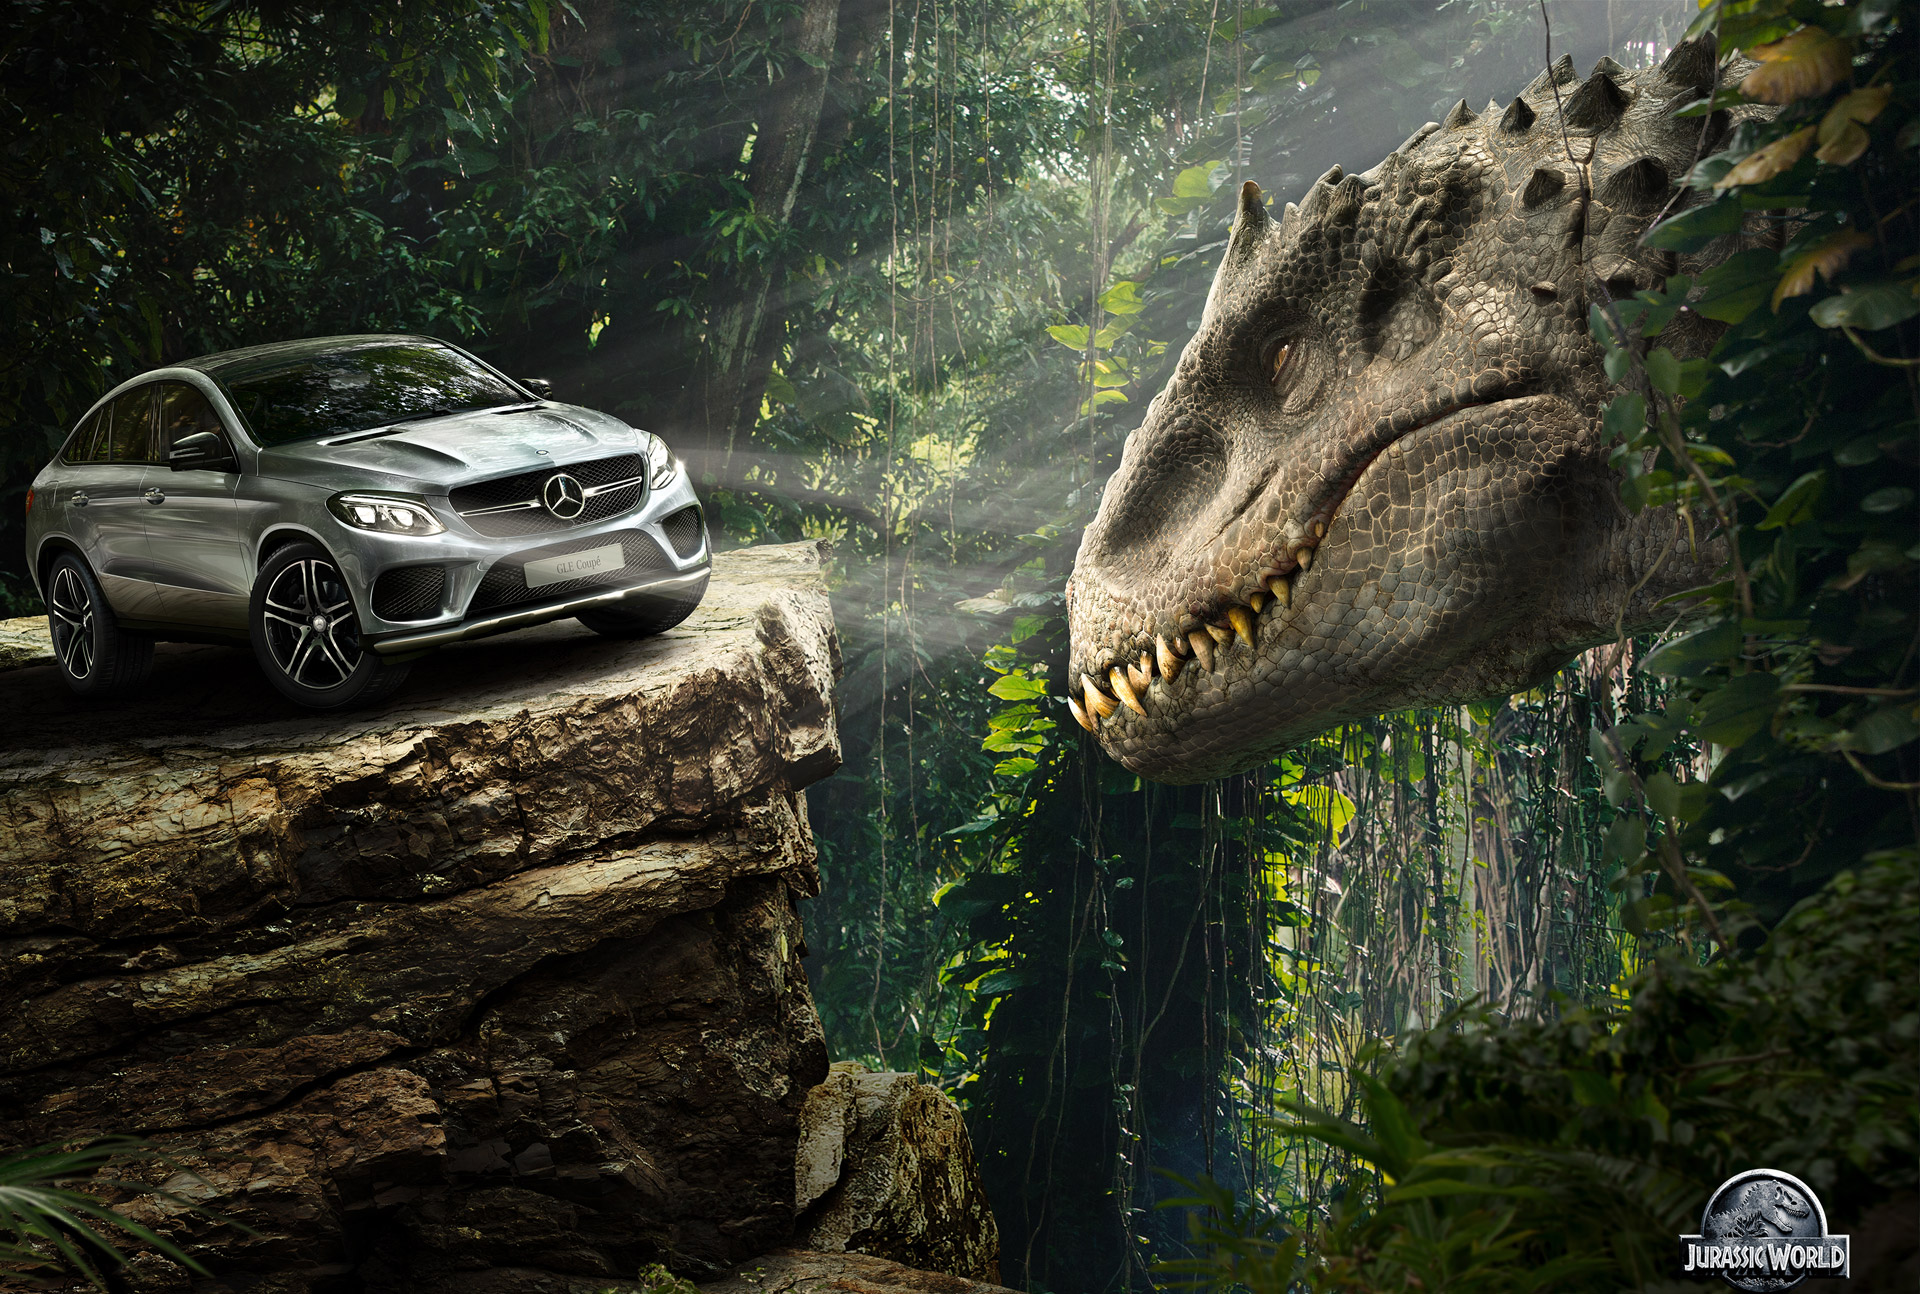 Mercedes Fleet Including Unimogs And G63 6x6 Starring In 'Jurassic ...